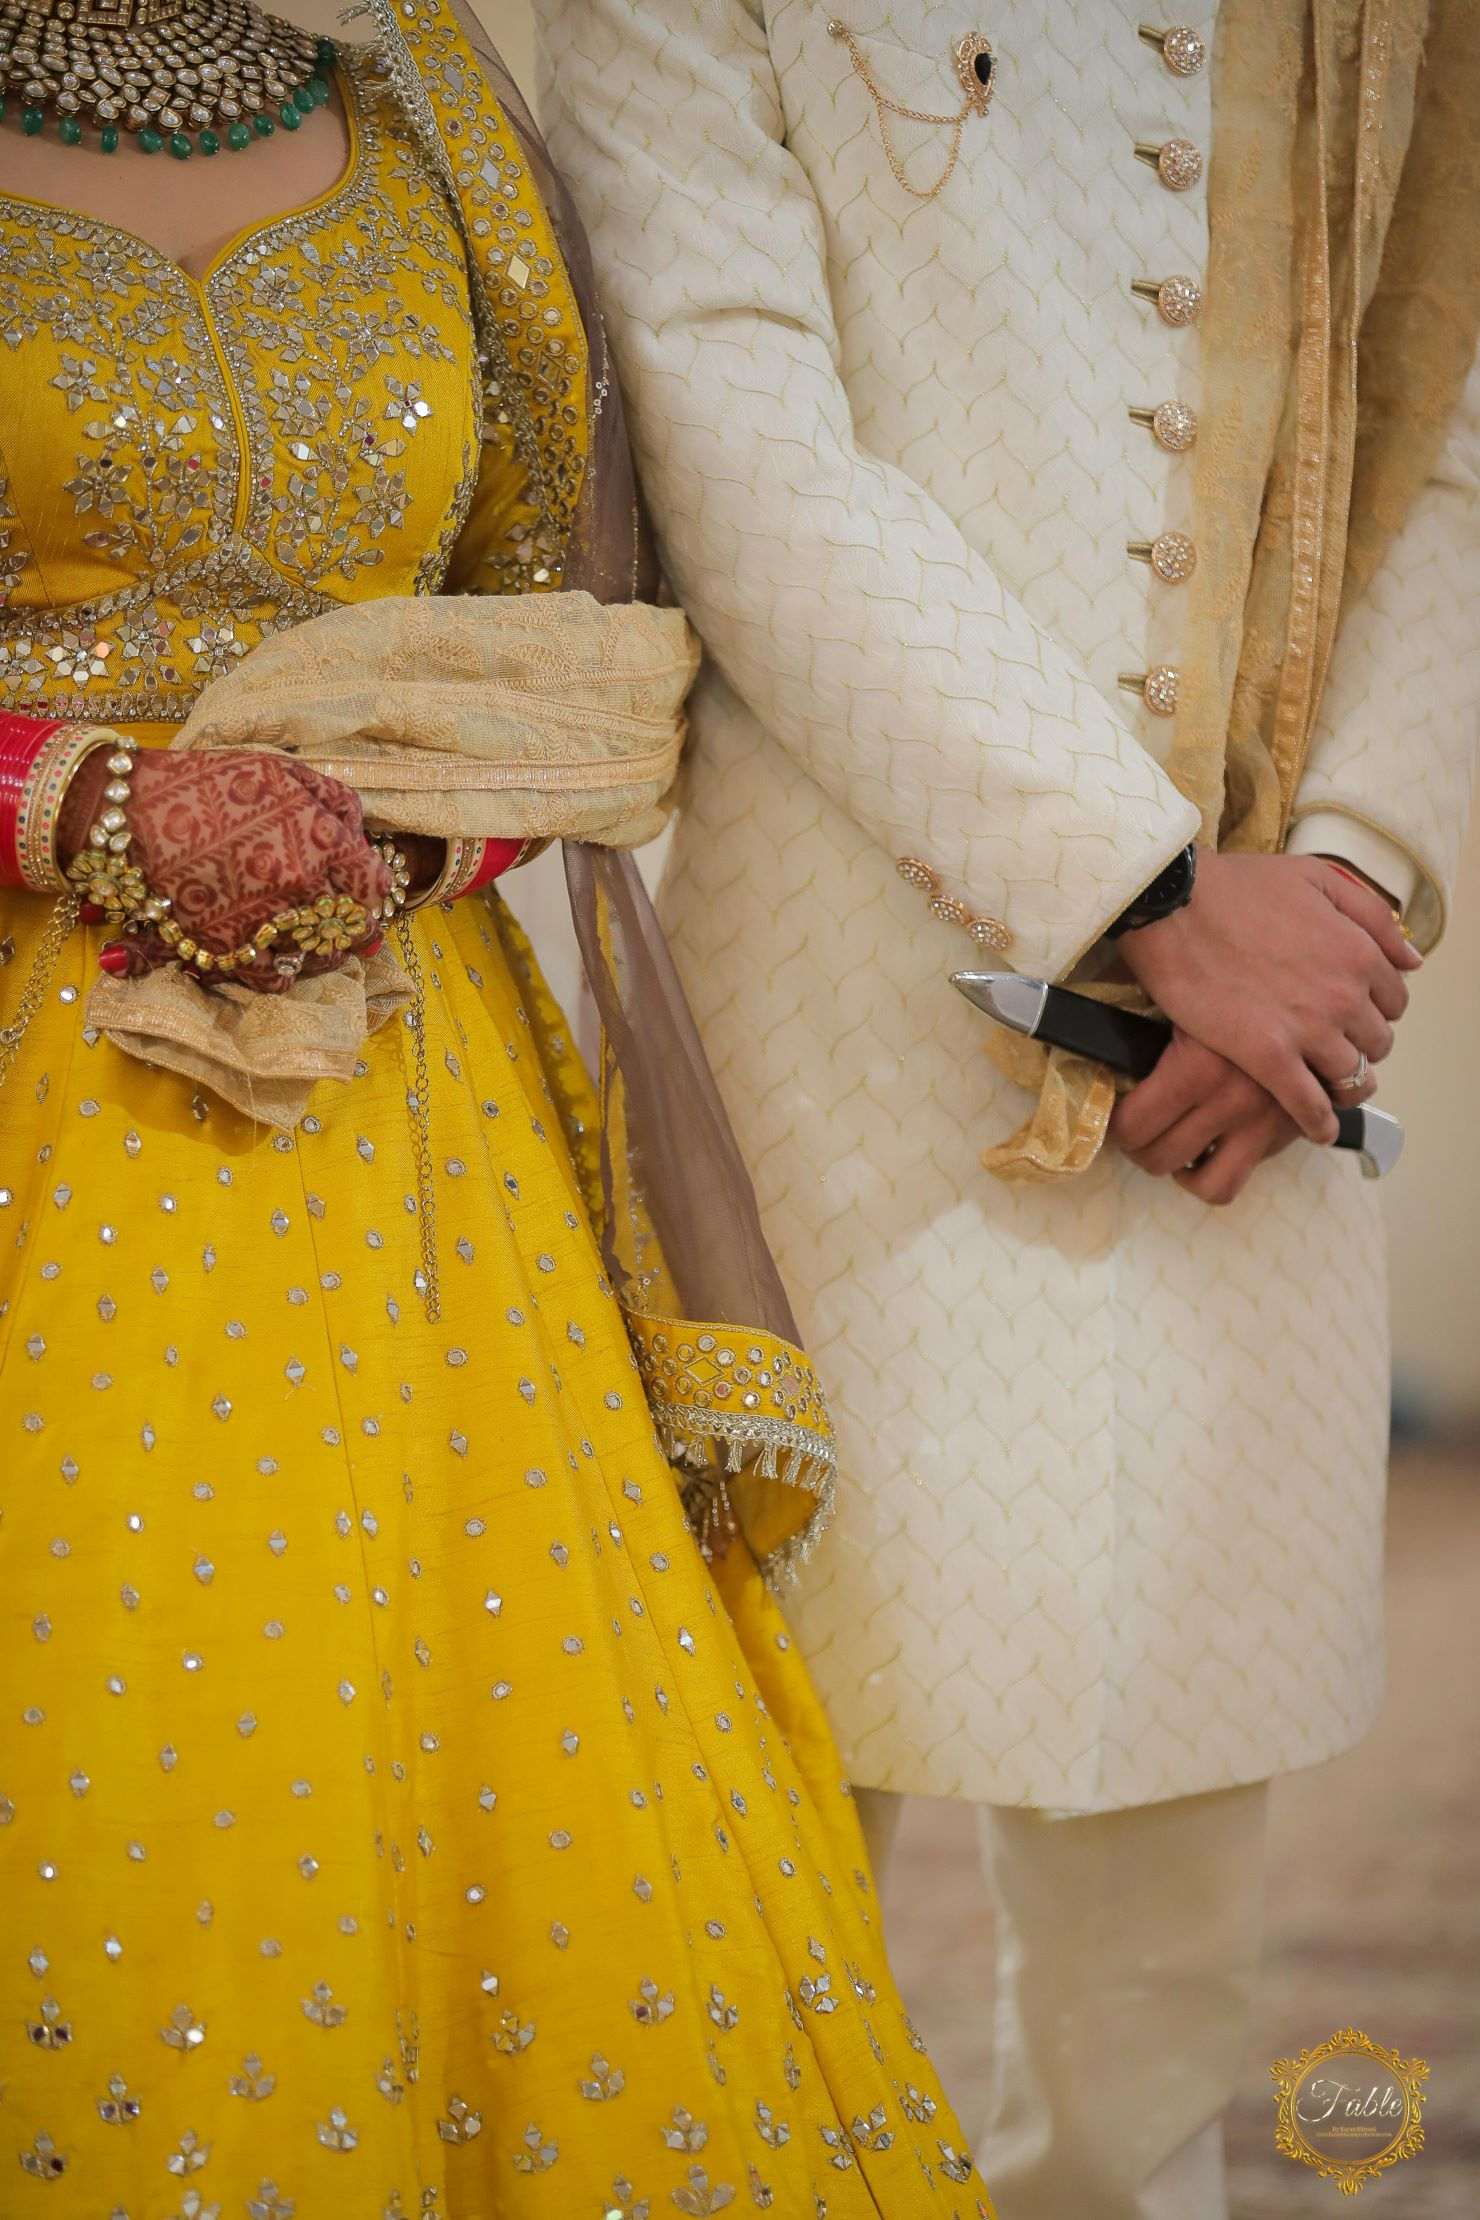 detail shot of couple's hands